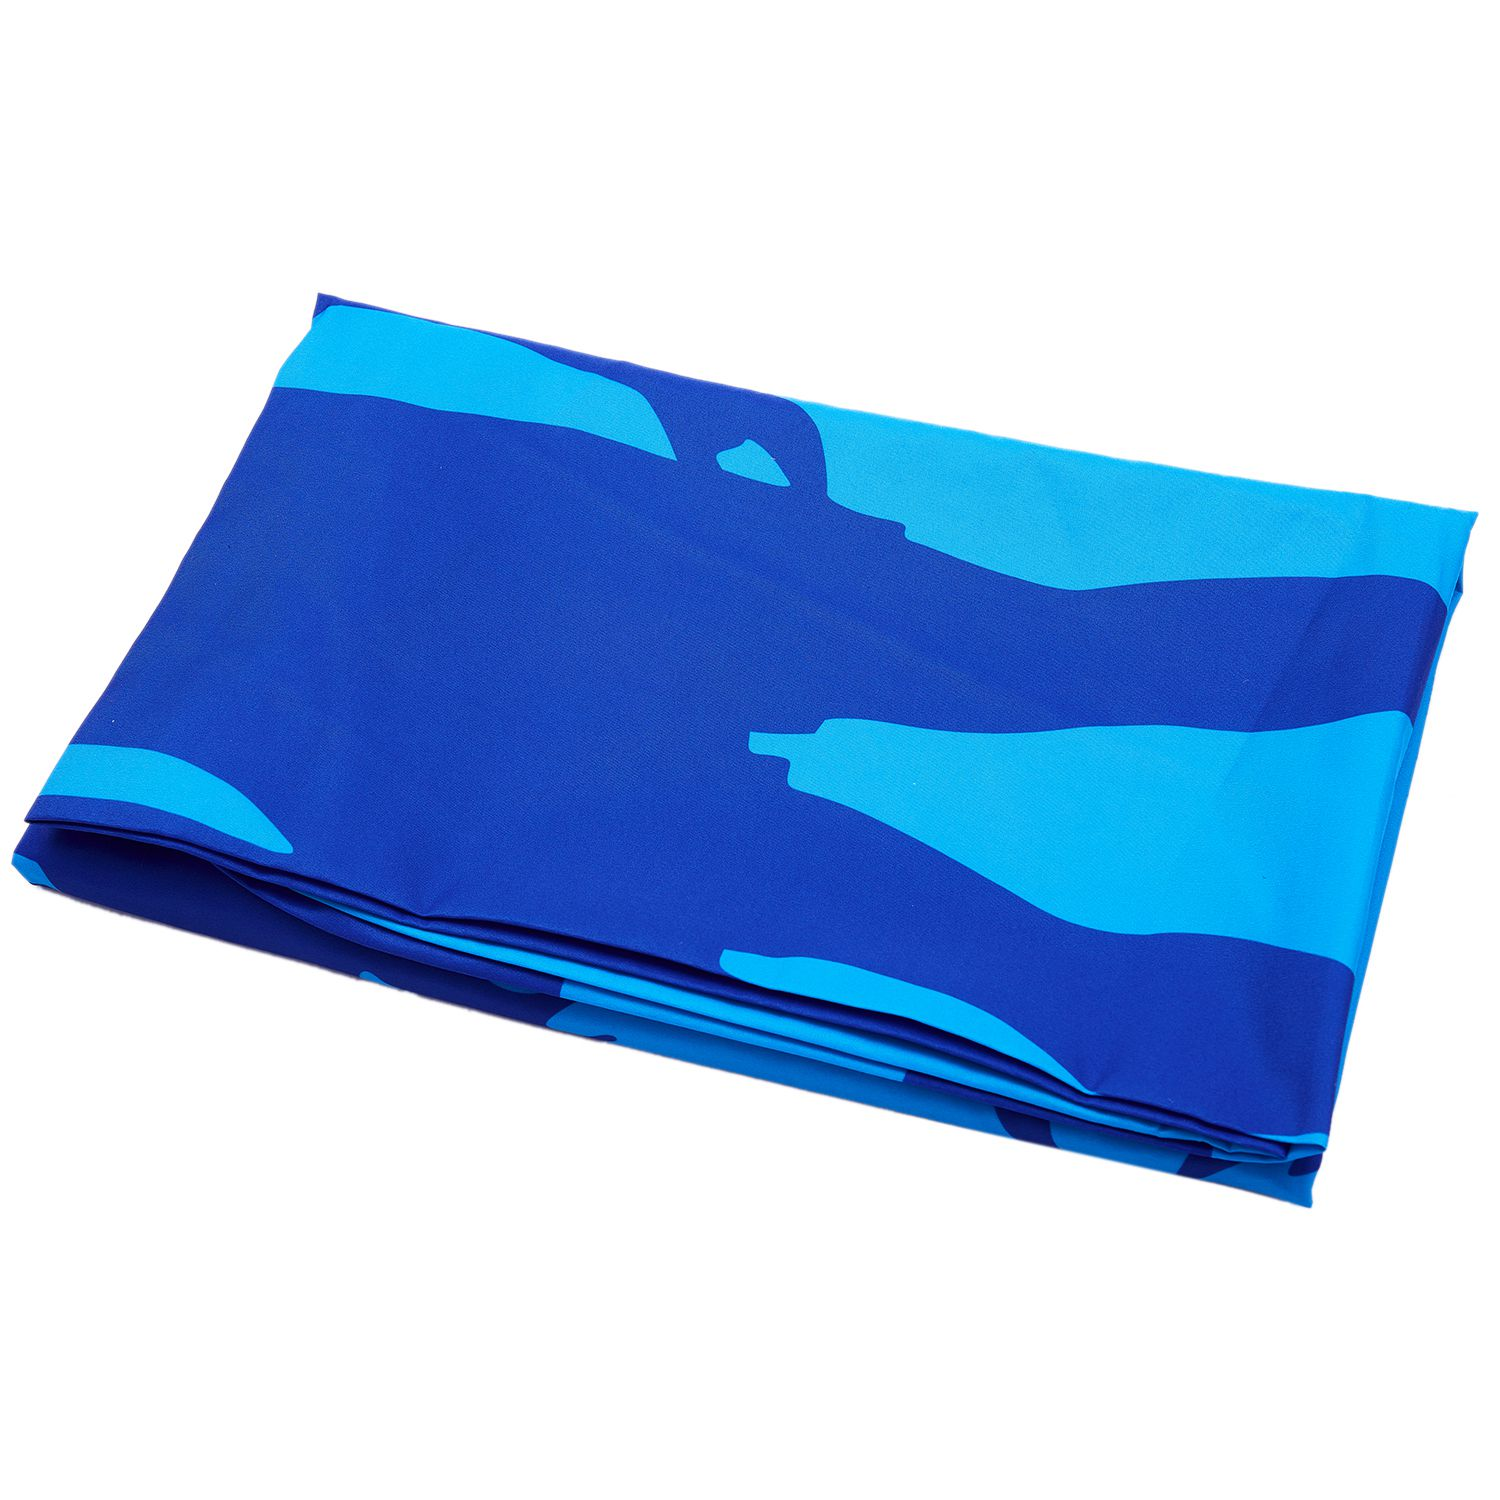 Travel Yoga Mat Or Towel: Hot Sale Polyester Skateboard Man And Beach Blue Towel